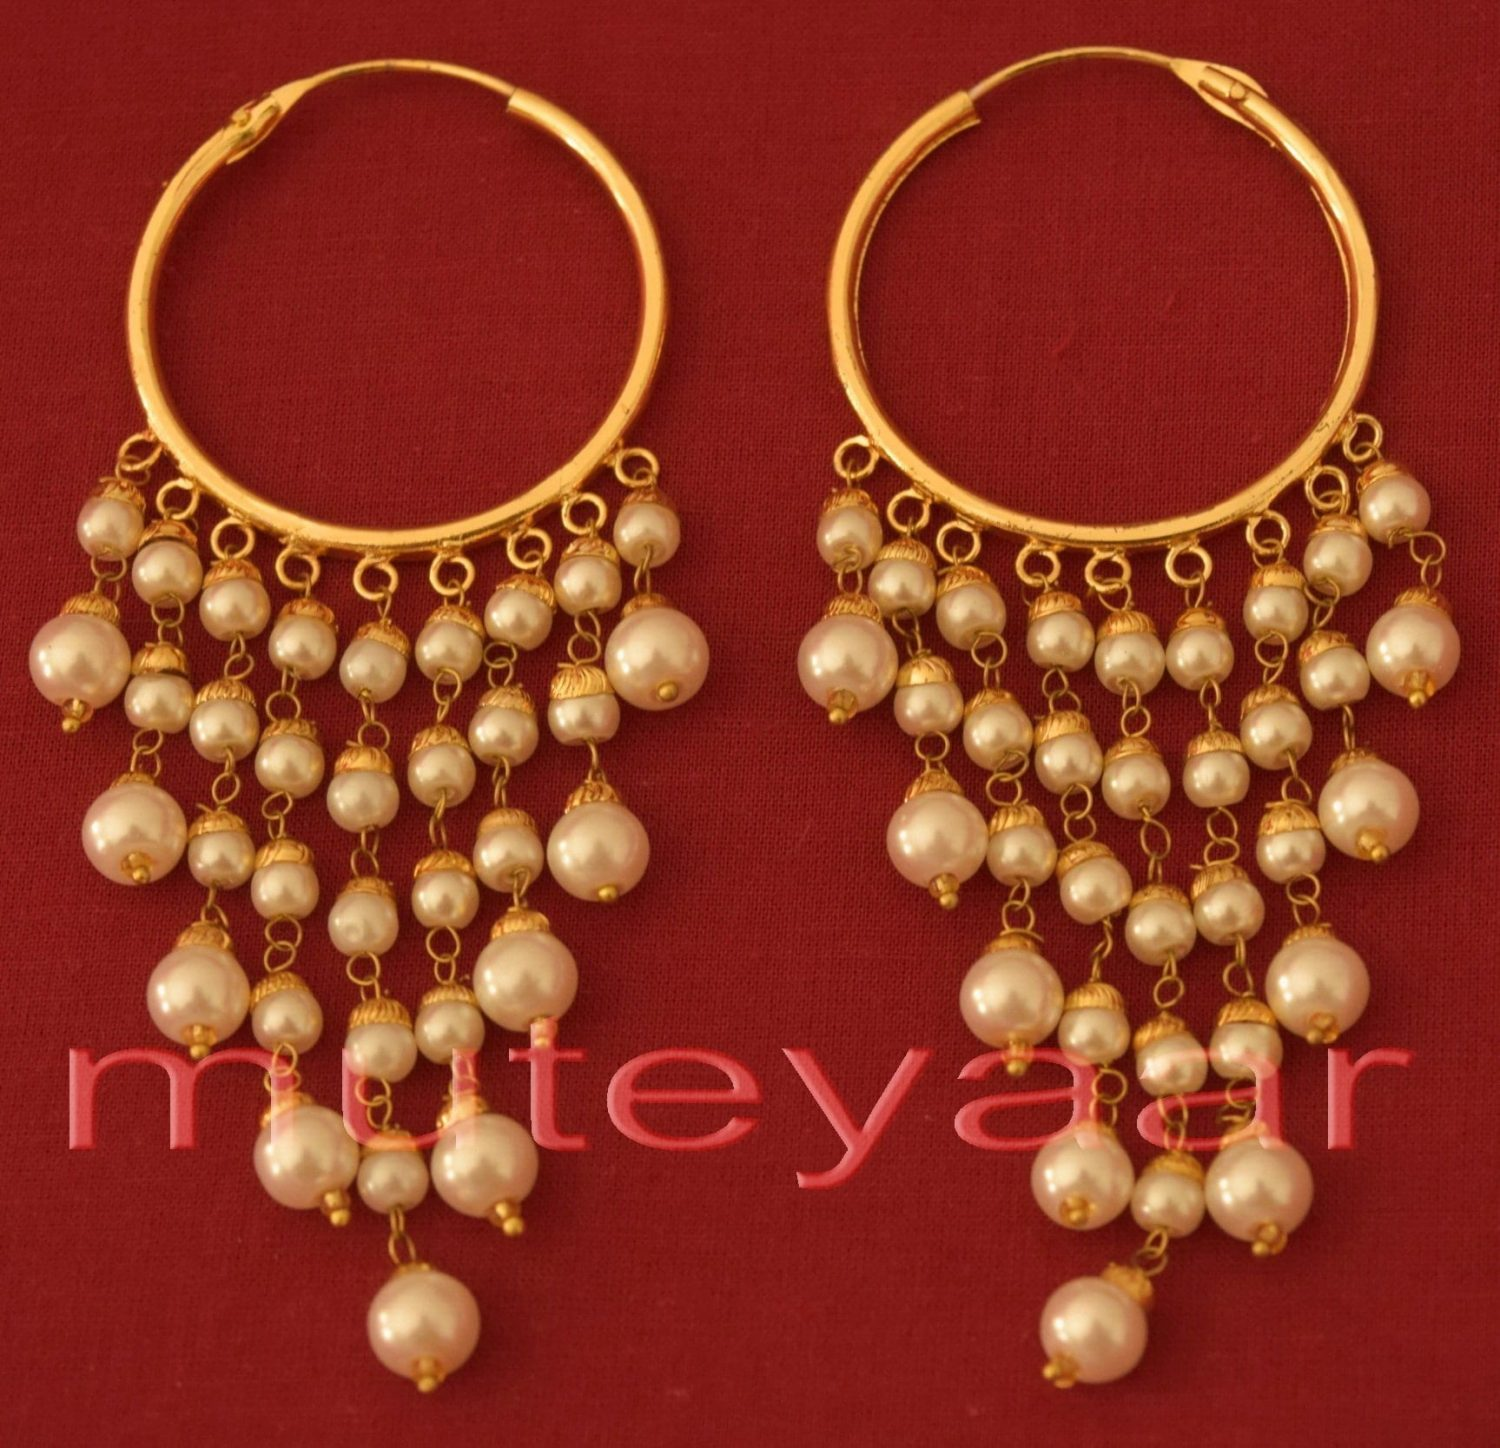 Traditional Punjabi Handmade Gold Plated Ear Rings Baliyyan set with White Beads J0215 1